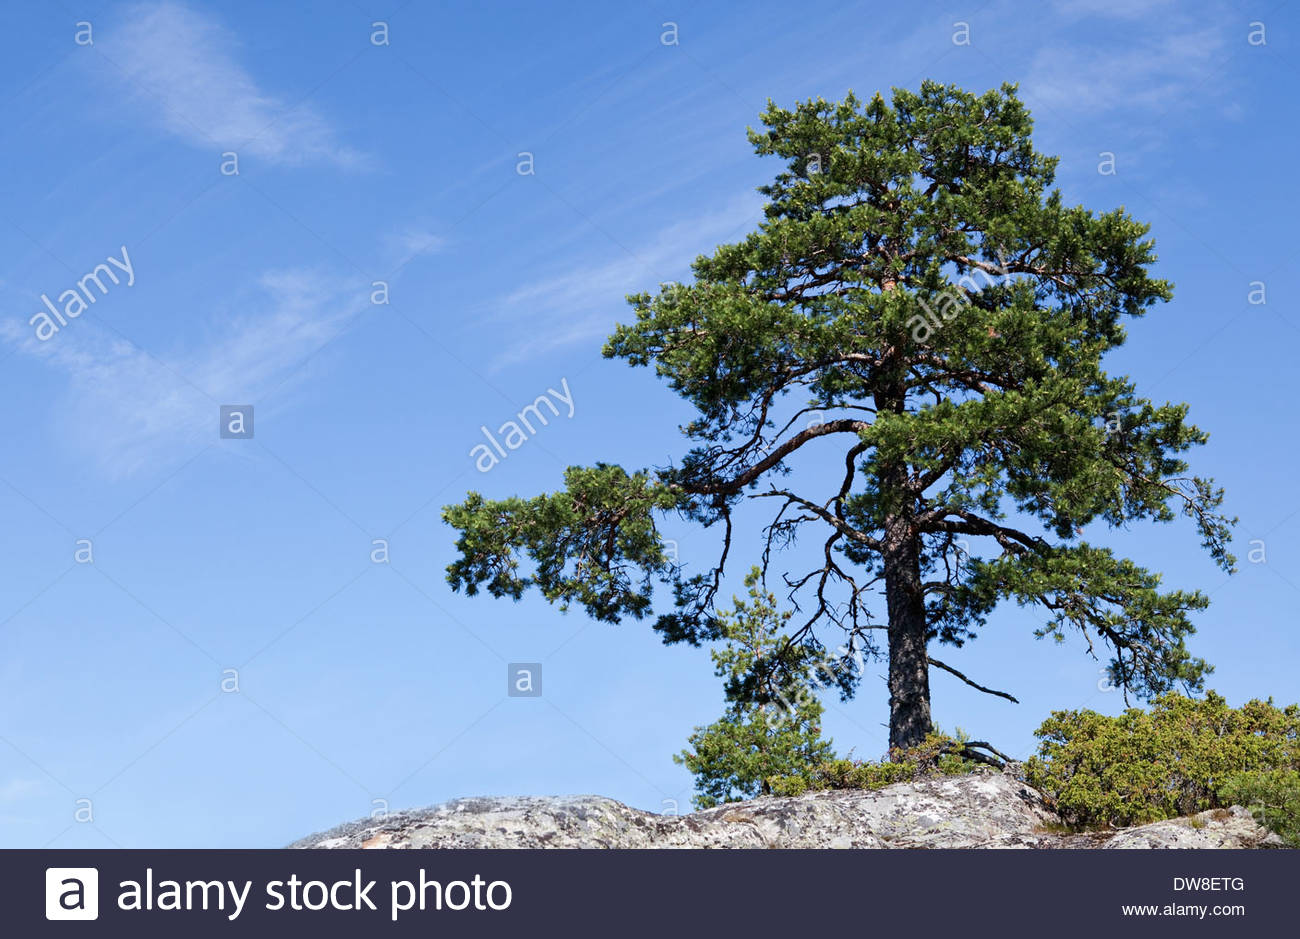 A Pine tree growing on a rocky island - Stock Image